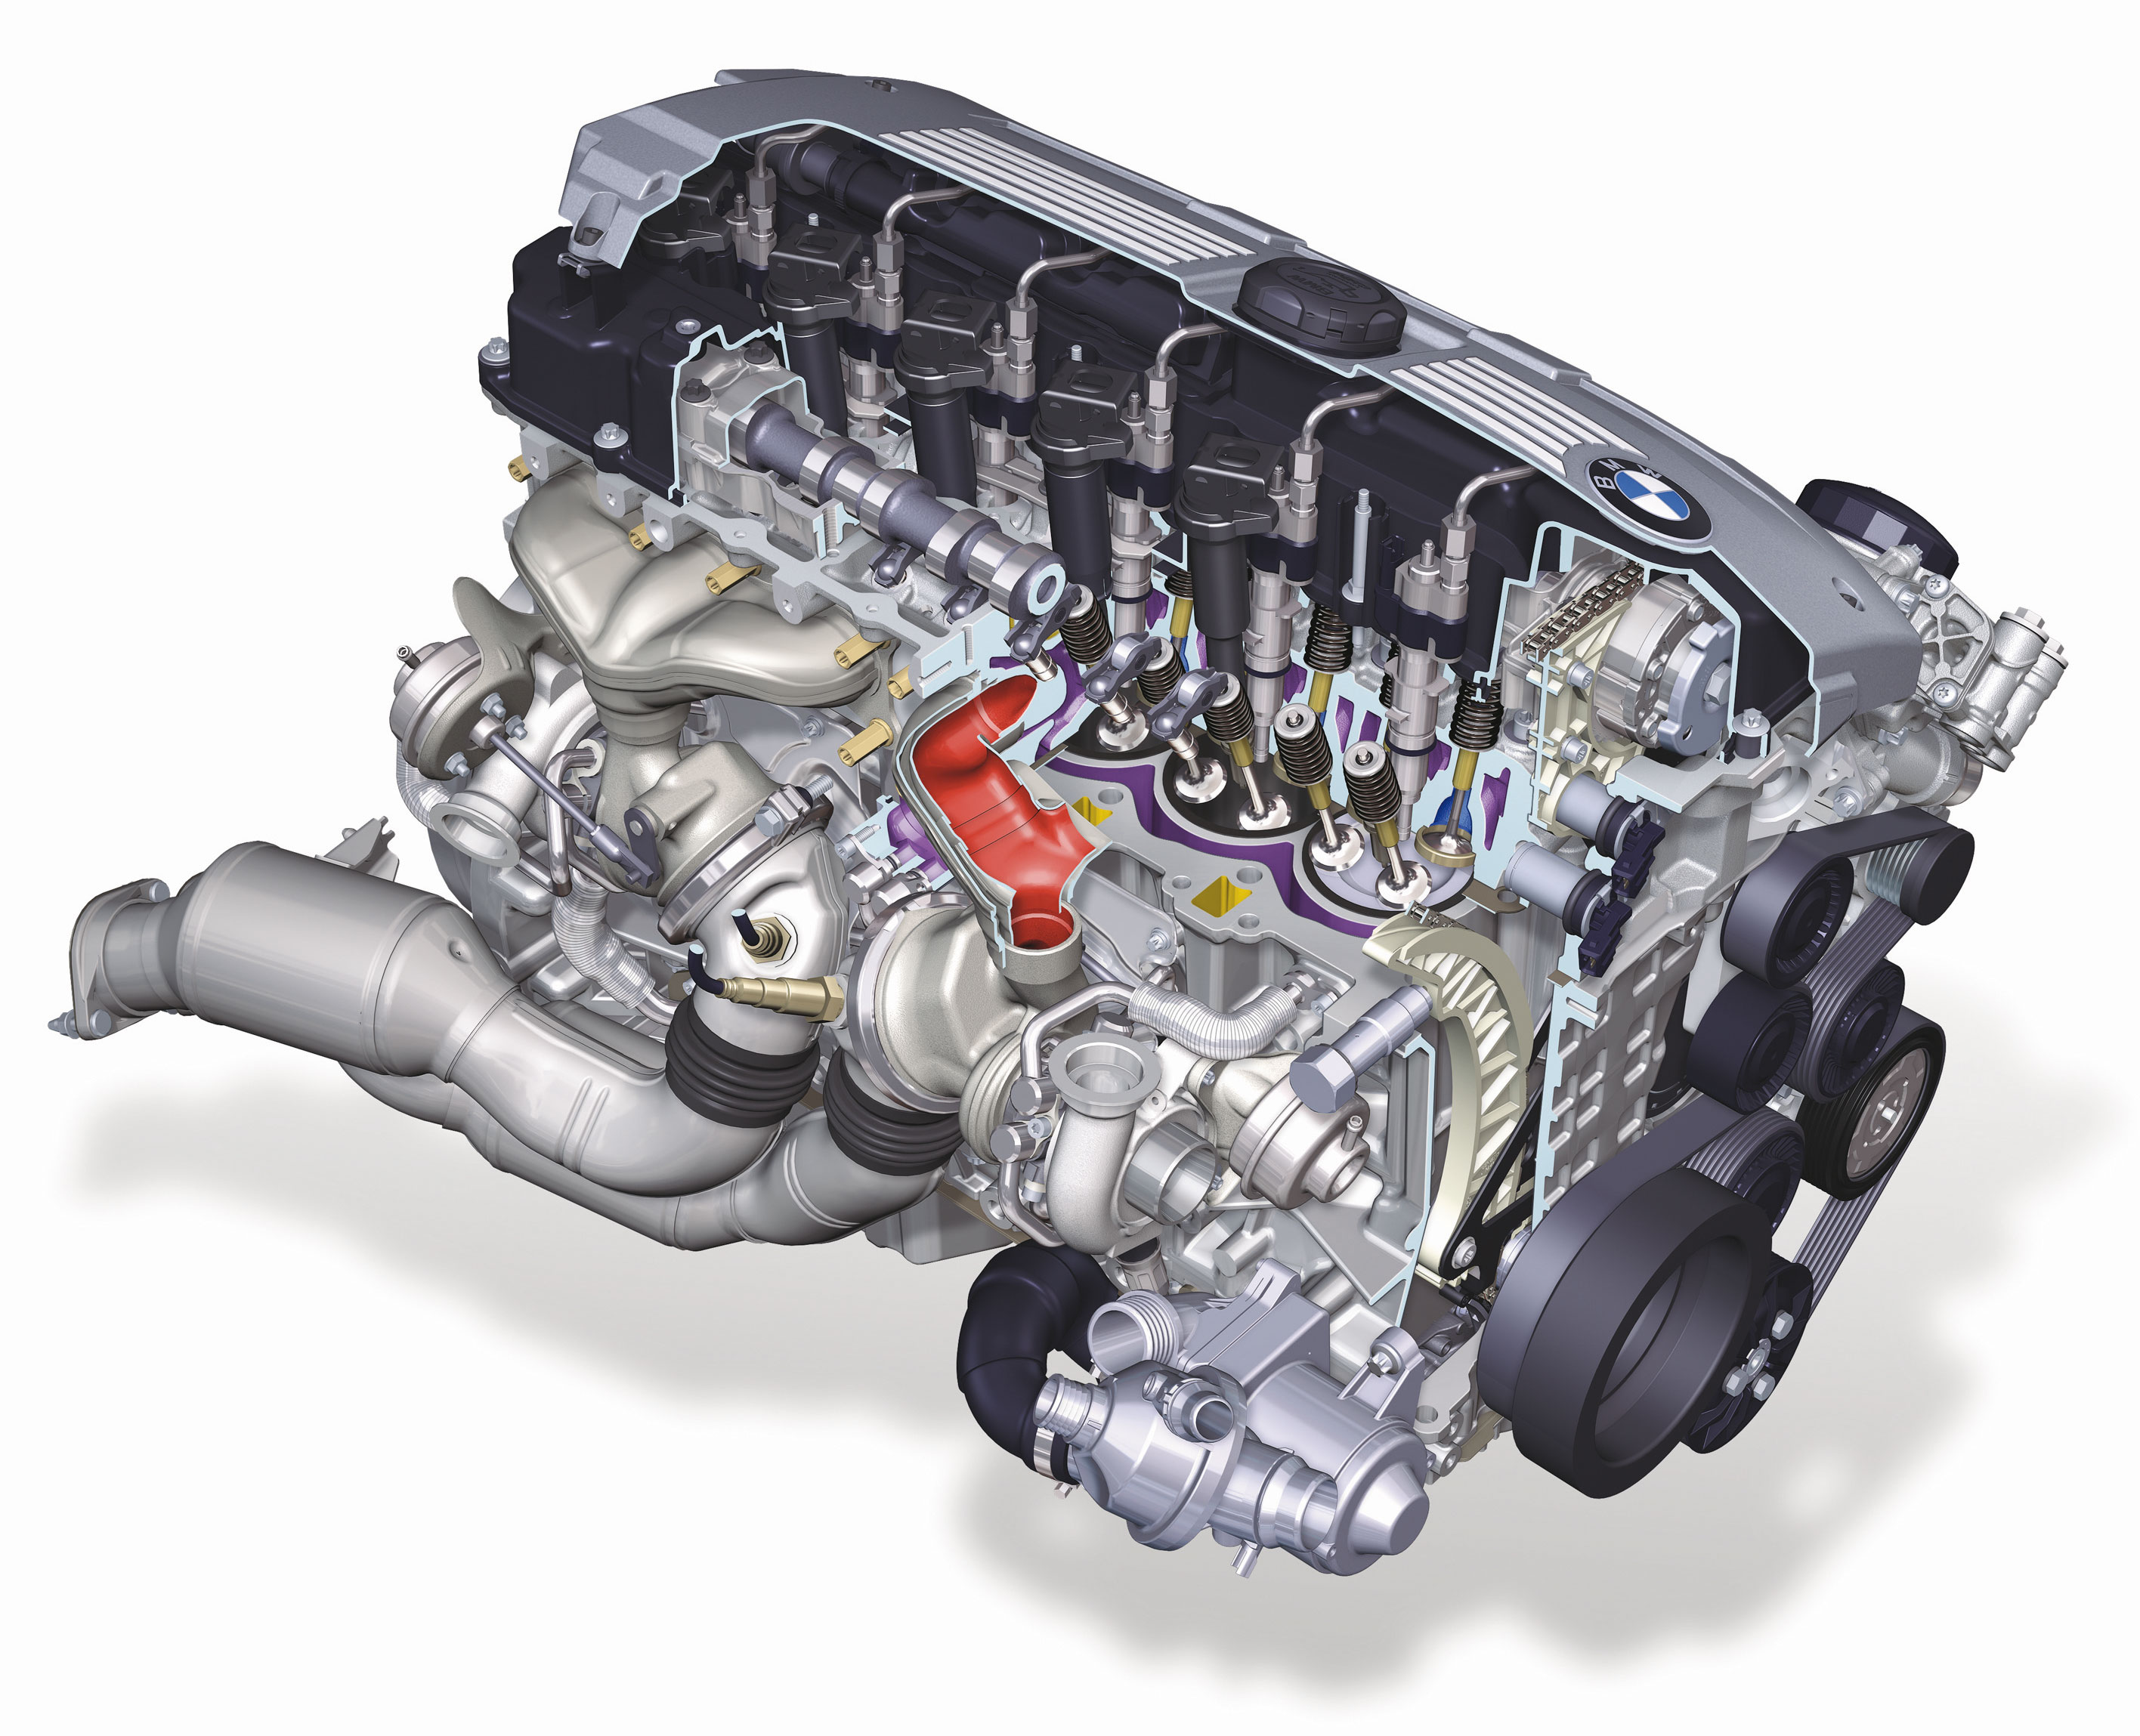 Bmw Engines Earn Two Places On Wards Annual 10 Best List S65 Engine Diagram 6 Cylinder Petrol